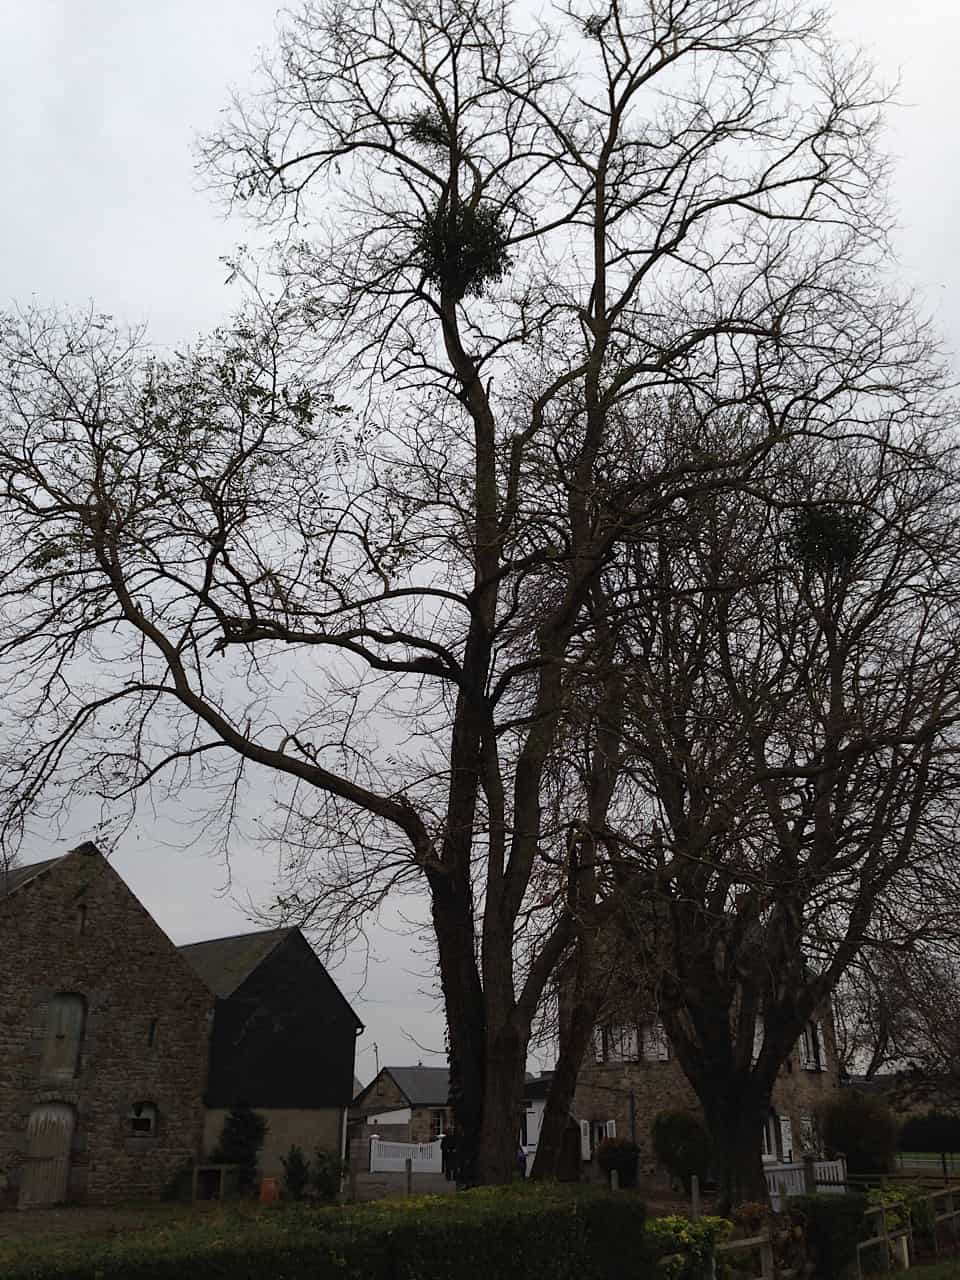 Mistletoe in trees, France.